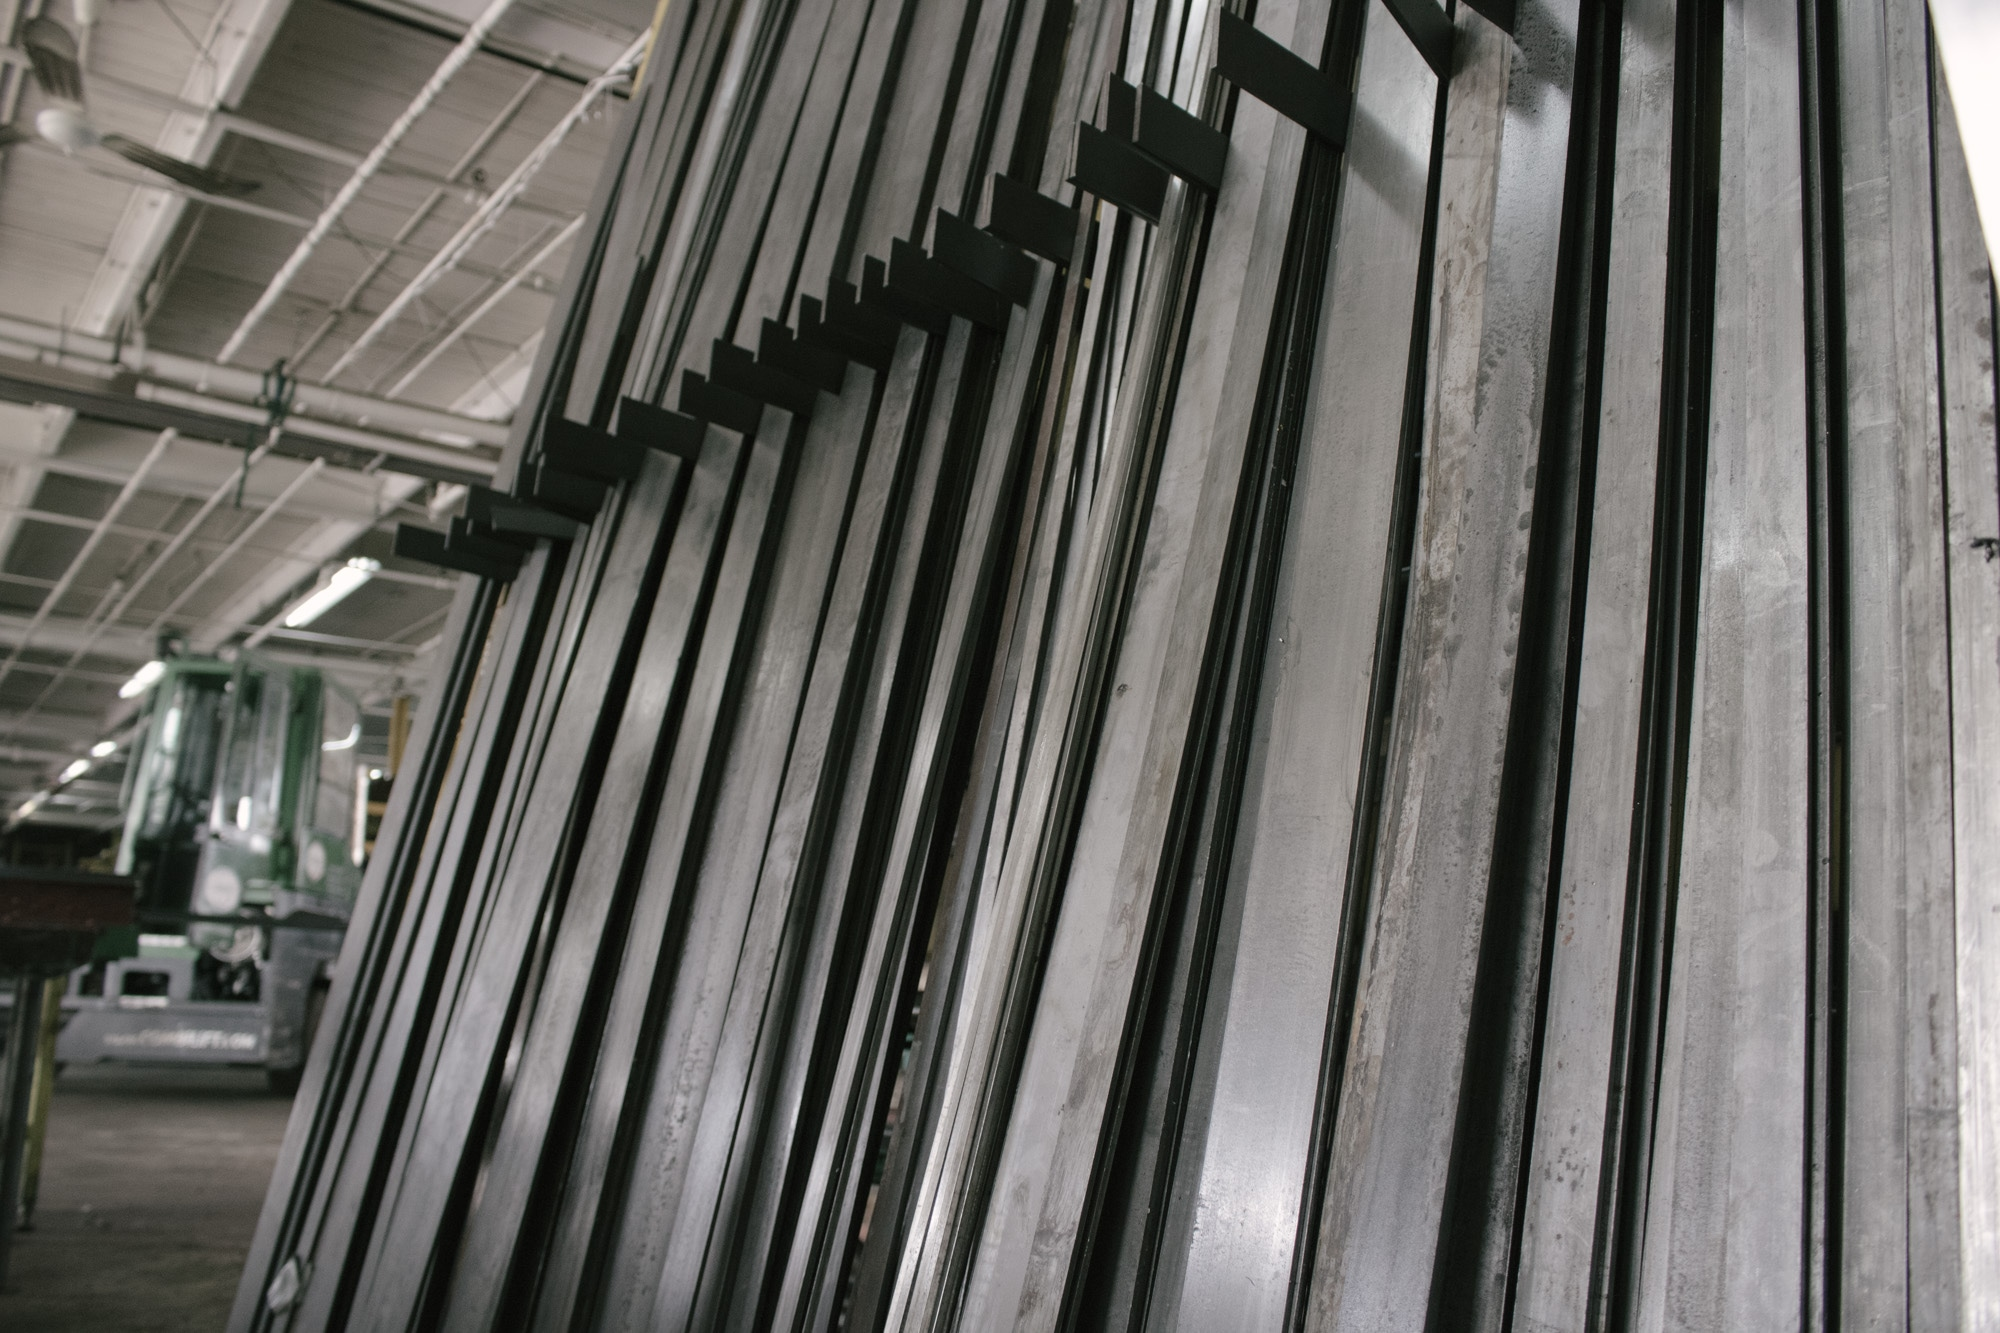 Image of Mr. Metal cold rolled steel products